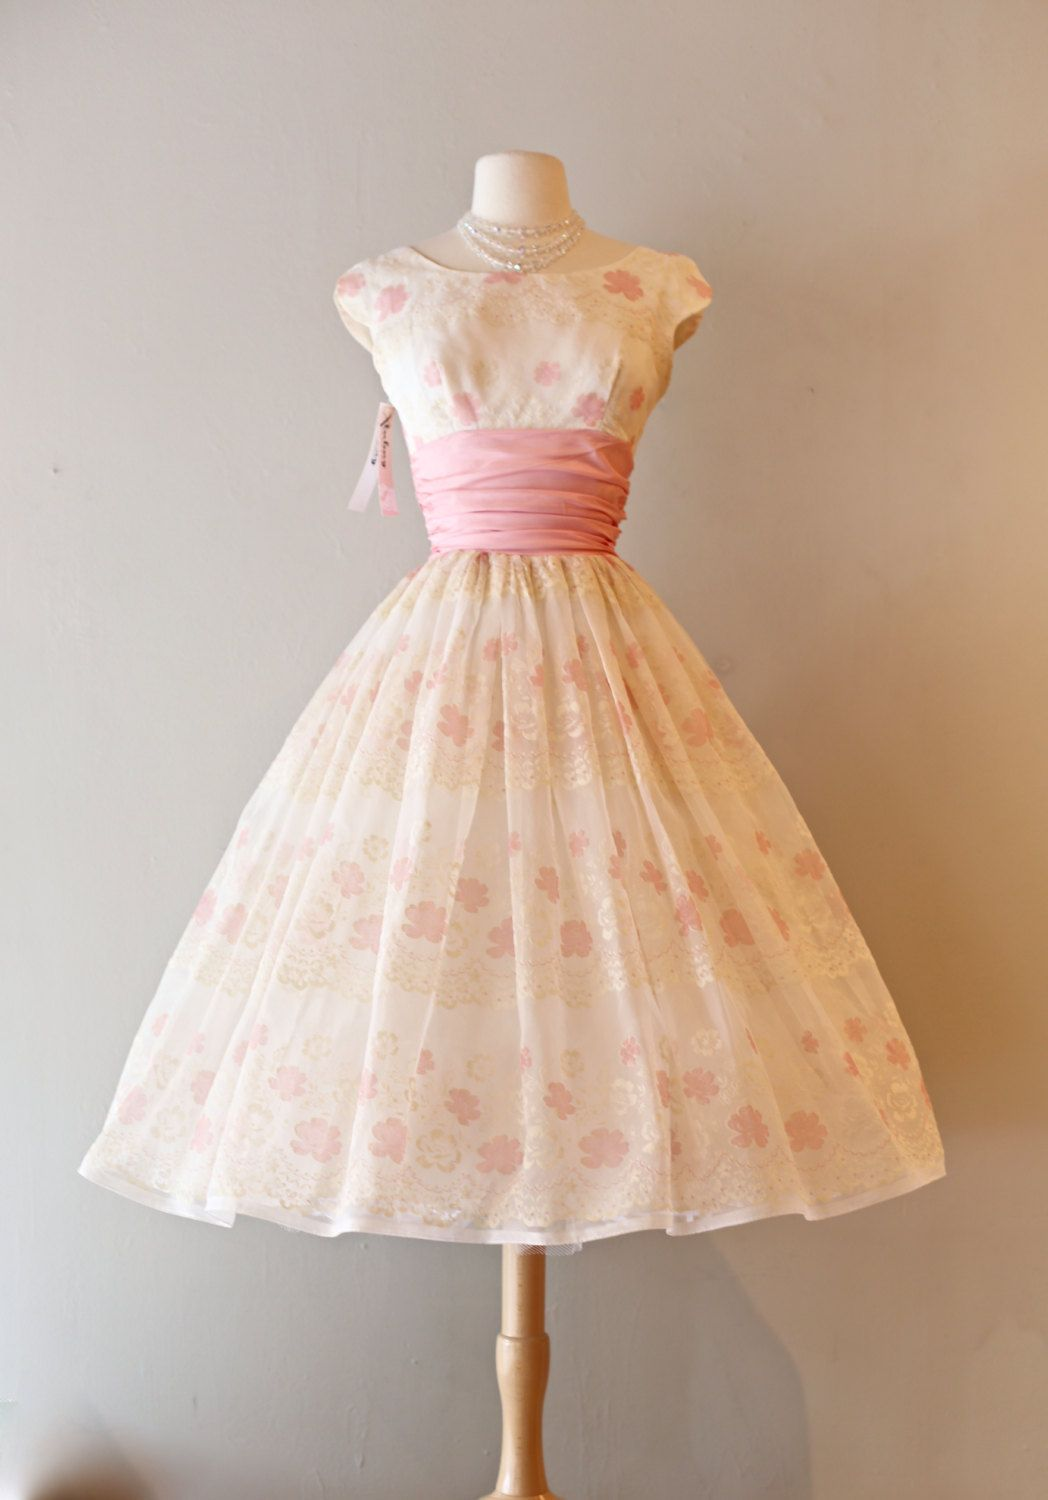 Vintage 1950's Rose Print Party Dress ~ Vintage 50s Pink Party Dress With Flocking and Full Skirt by xtabayvintage on Etsy